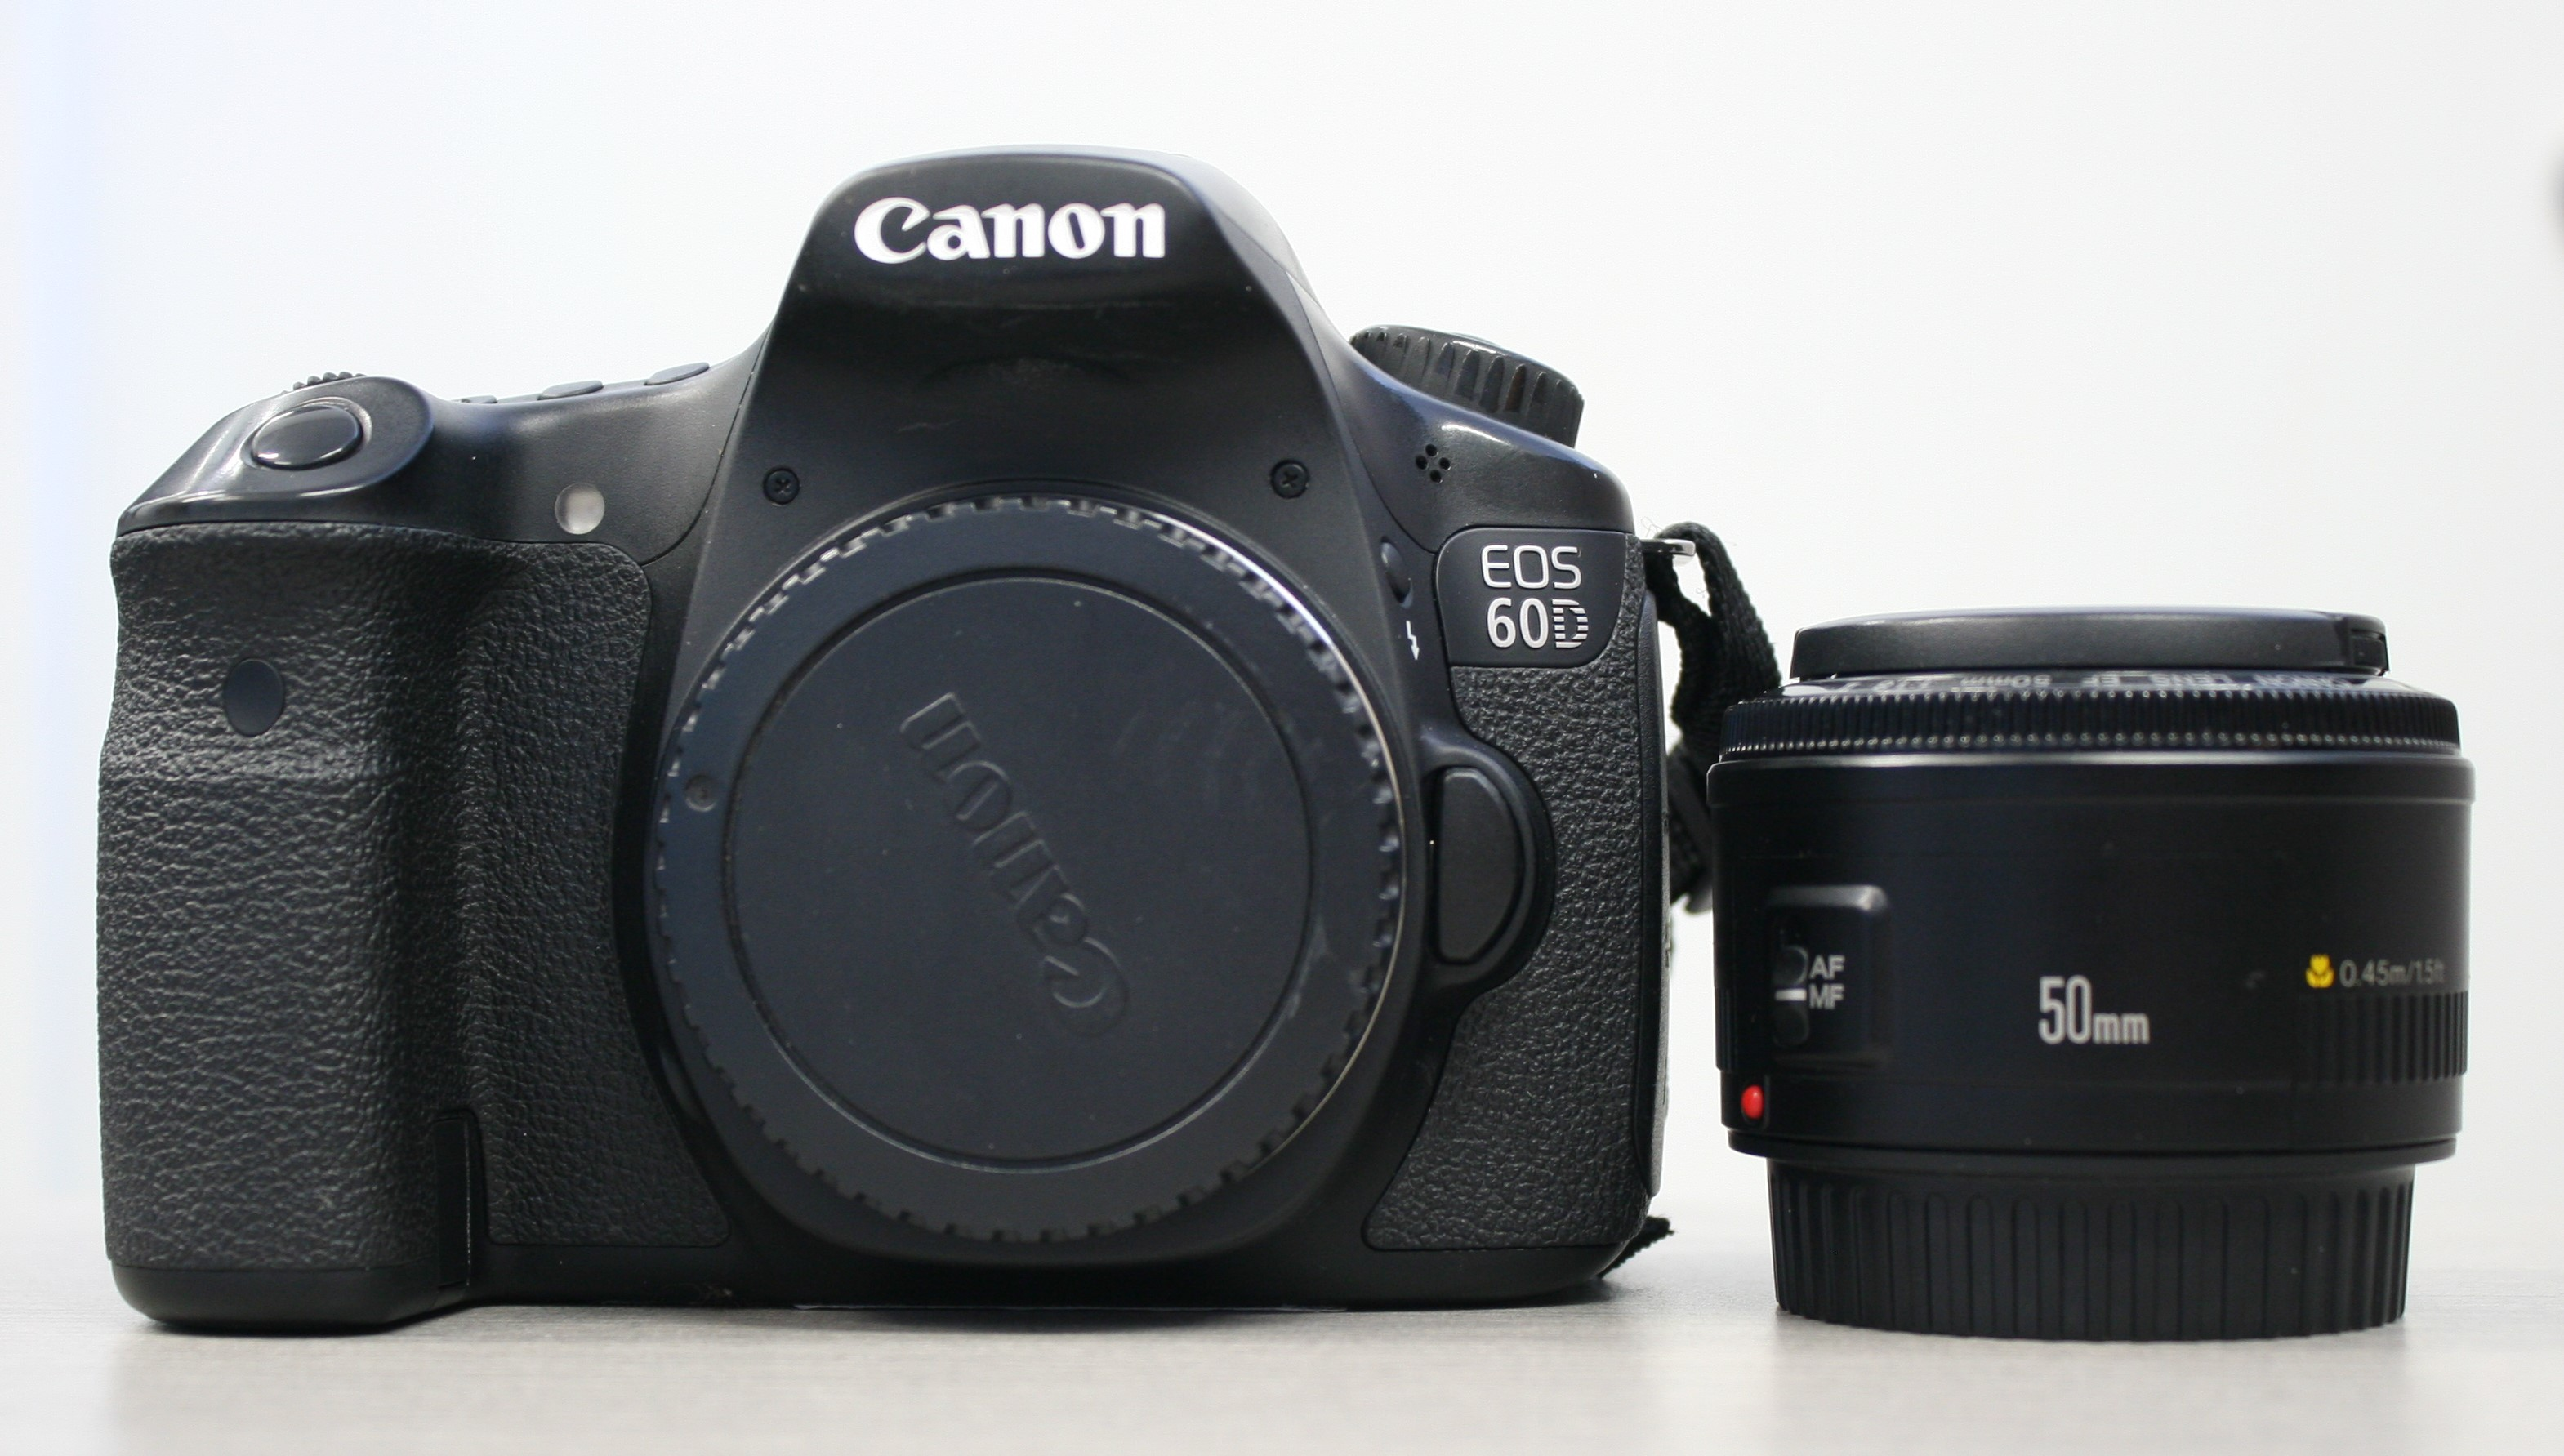 EOS 60D with 50mm lens